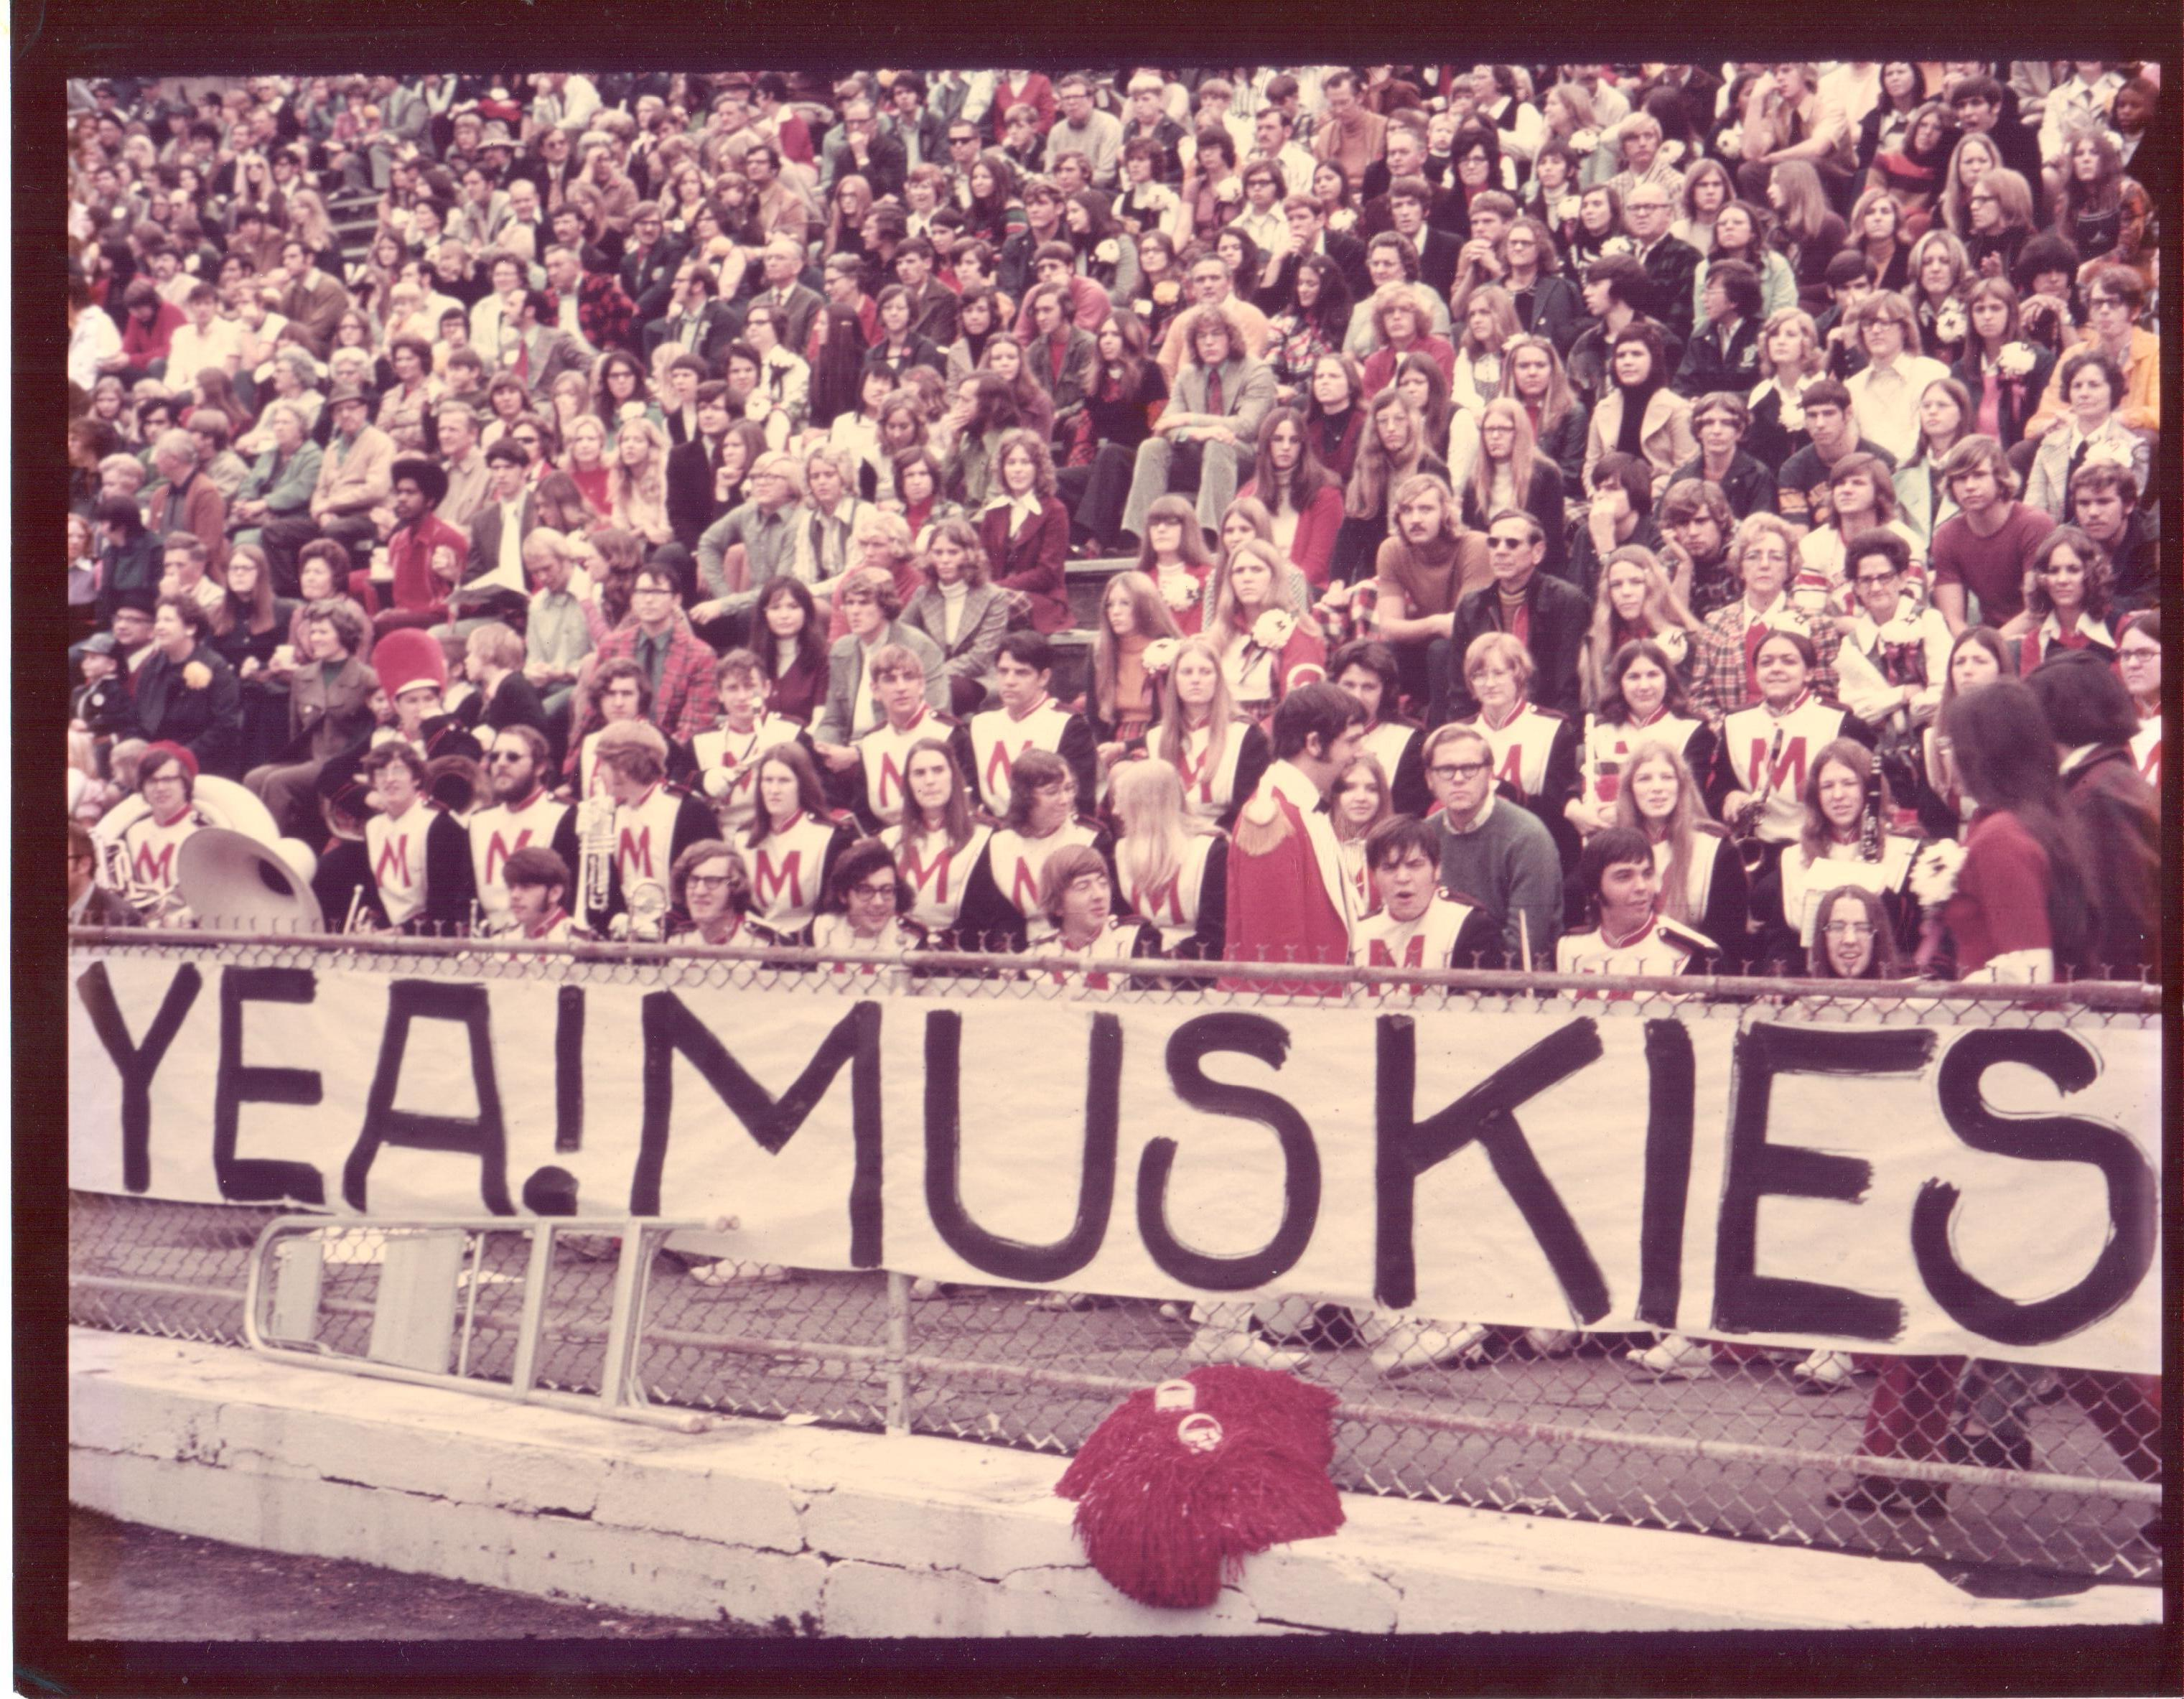 Muskingum band students cheering on their fellow muskies. This is a photo of the student band along with some Muskingum students in the background. Muskingum students made a banner to cheer on their Fighting Muskies.